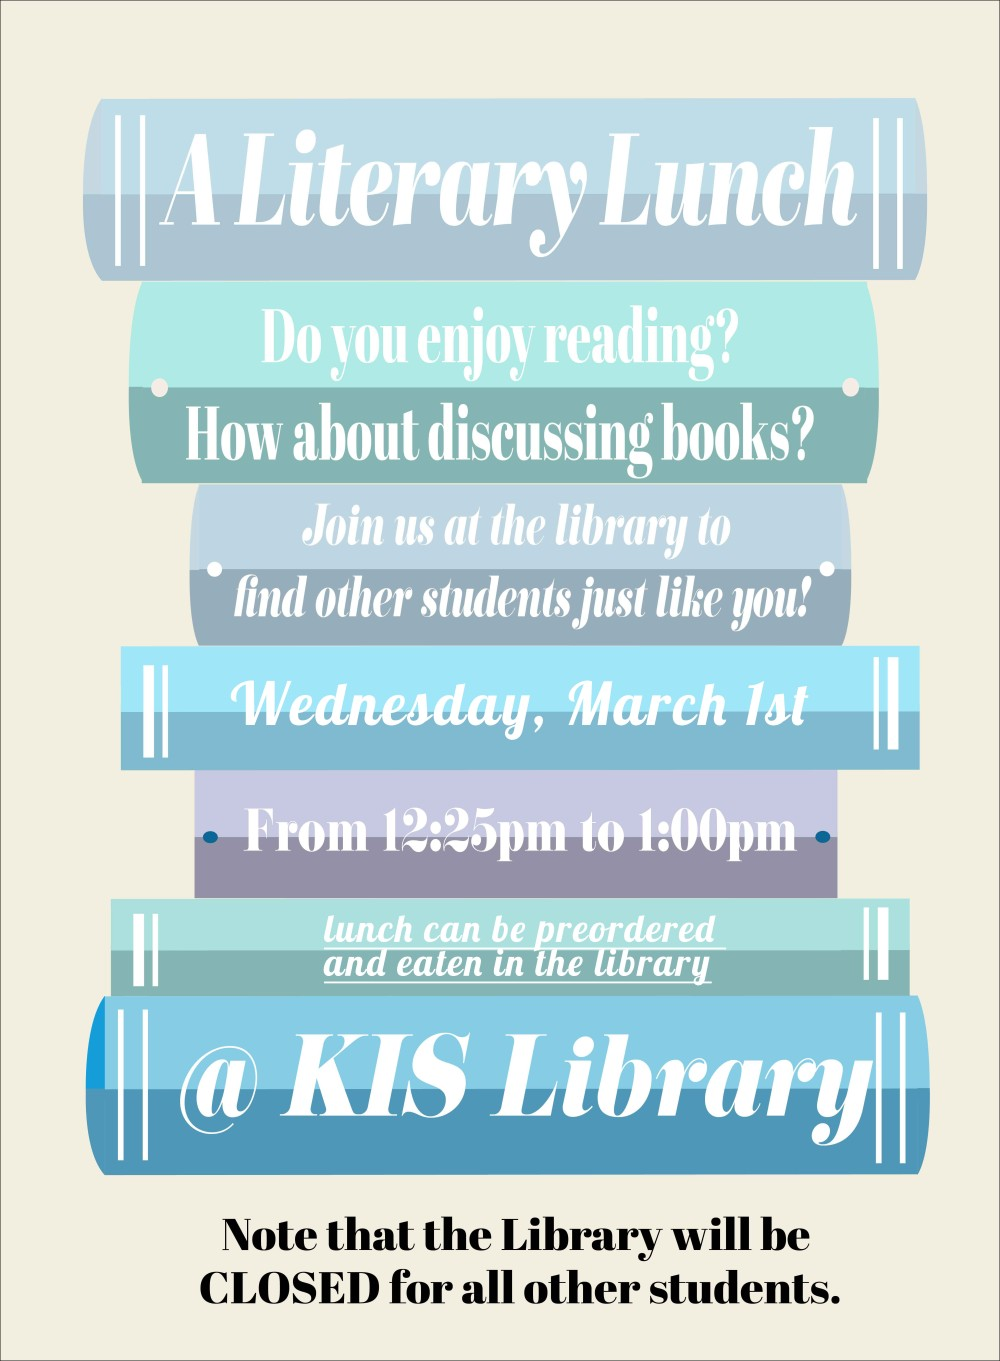 a-literary-lunch-march1st